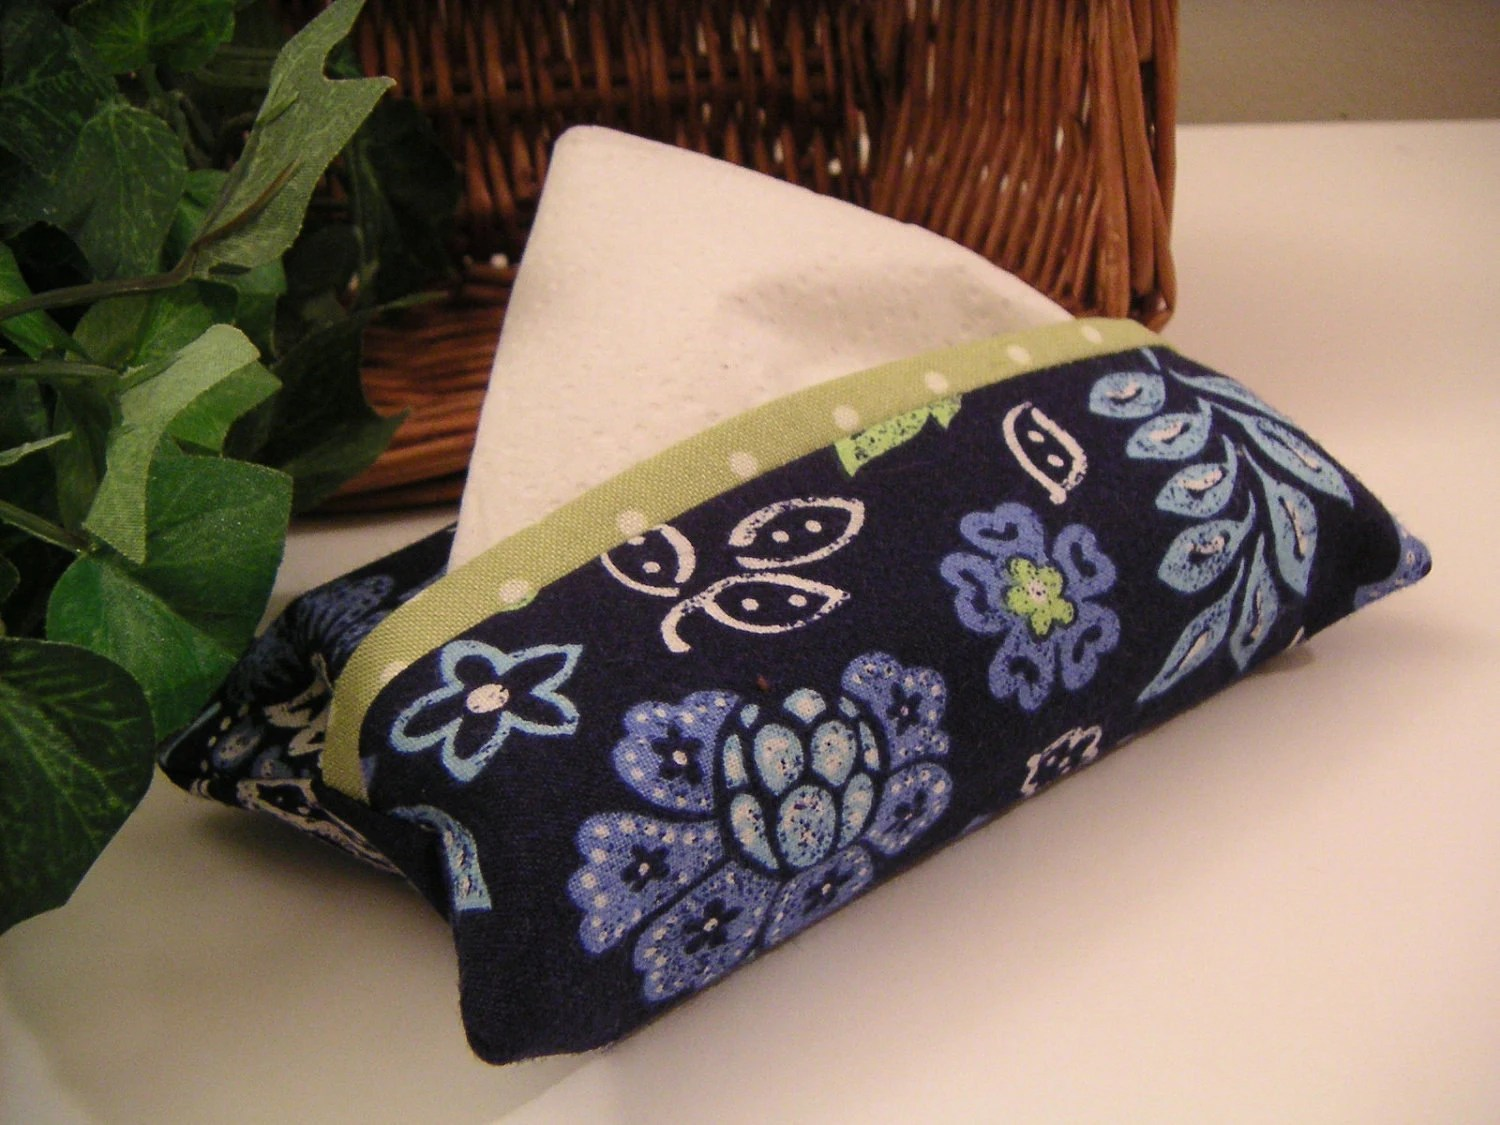 Tissue Cozy - Dark Blue Floral